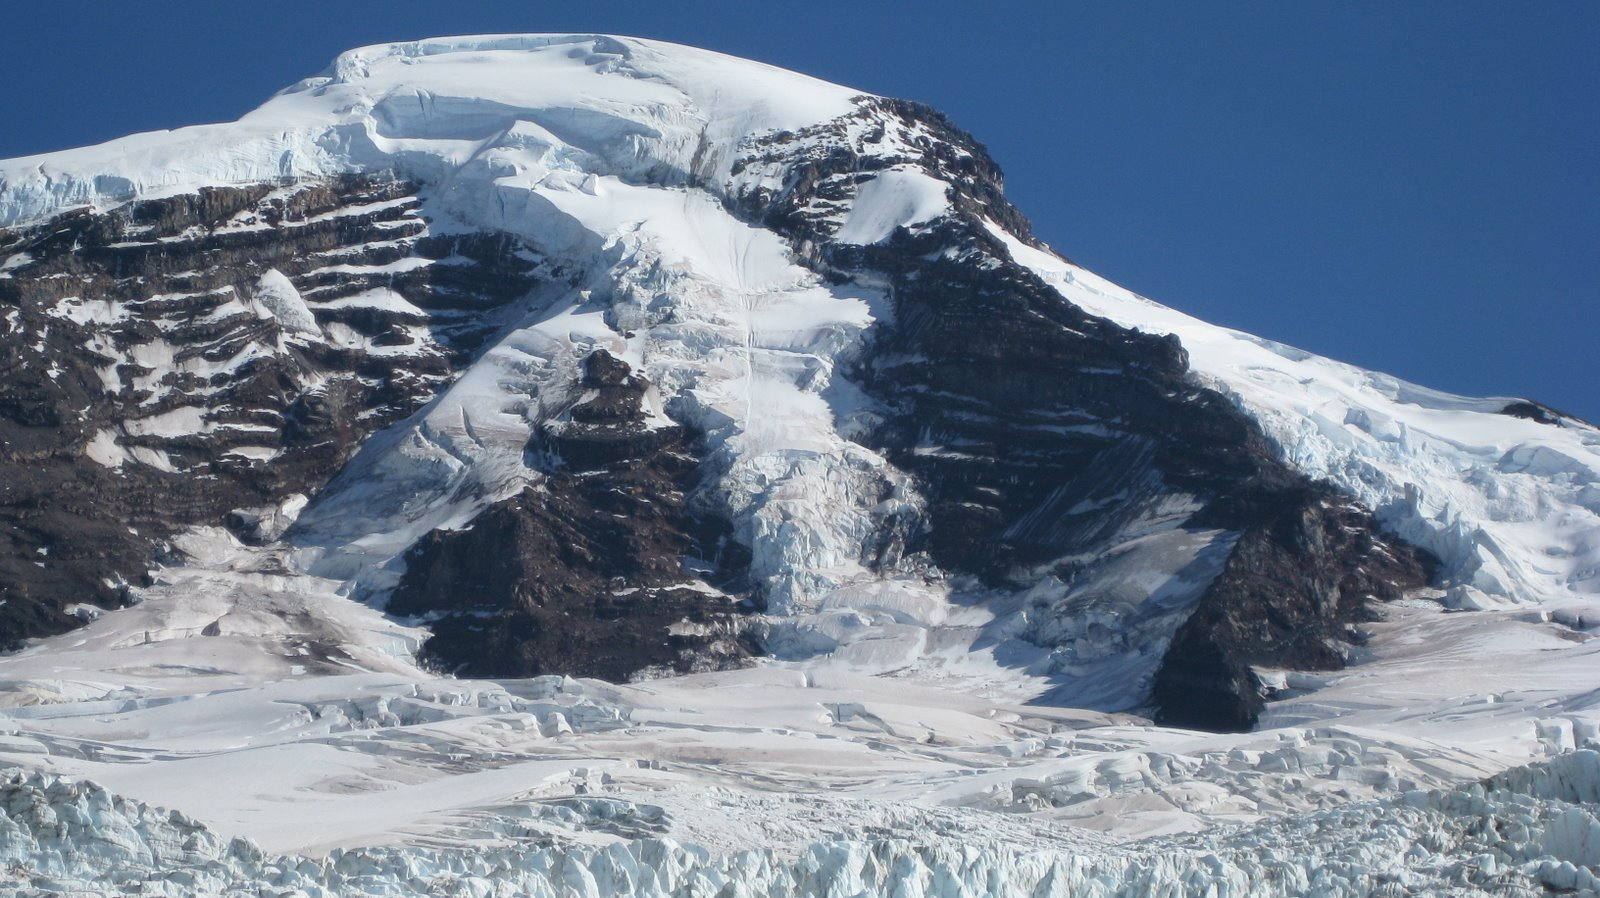 Our route starts with the ice on the left of the rock triangle and meets up with the othr side above